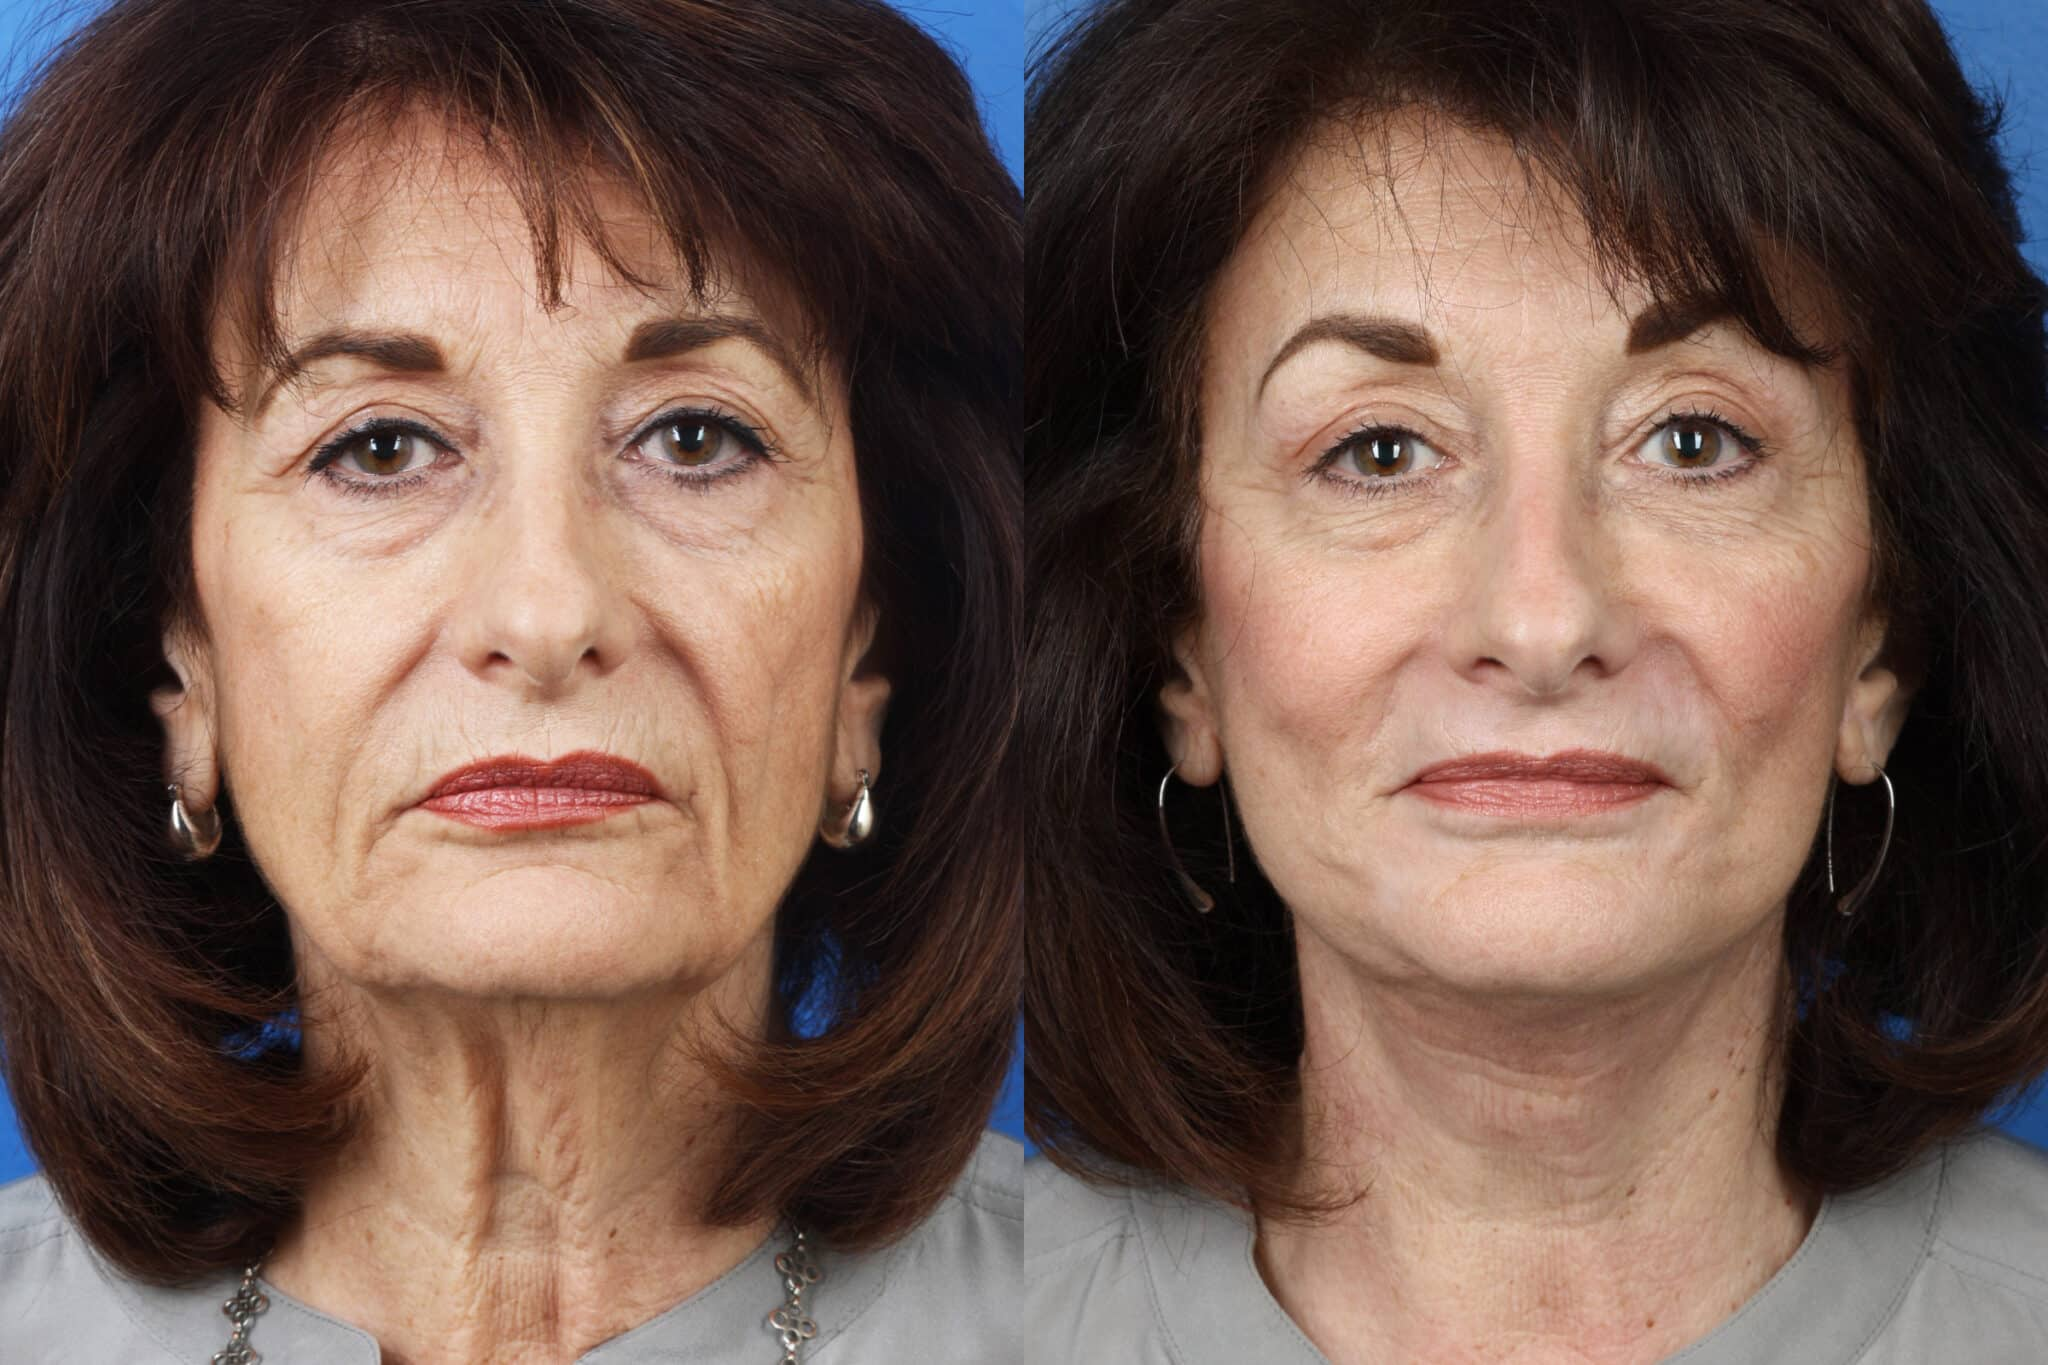 Facelift, Neck Lift, Dermabrasion and Earlobe Repair on a Female Patient by Dr. Miller